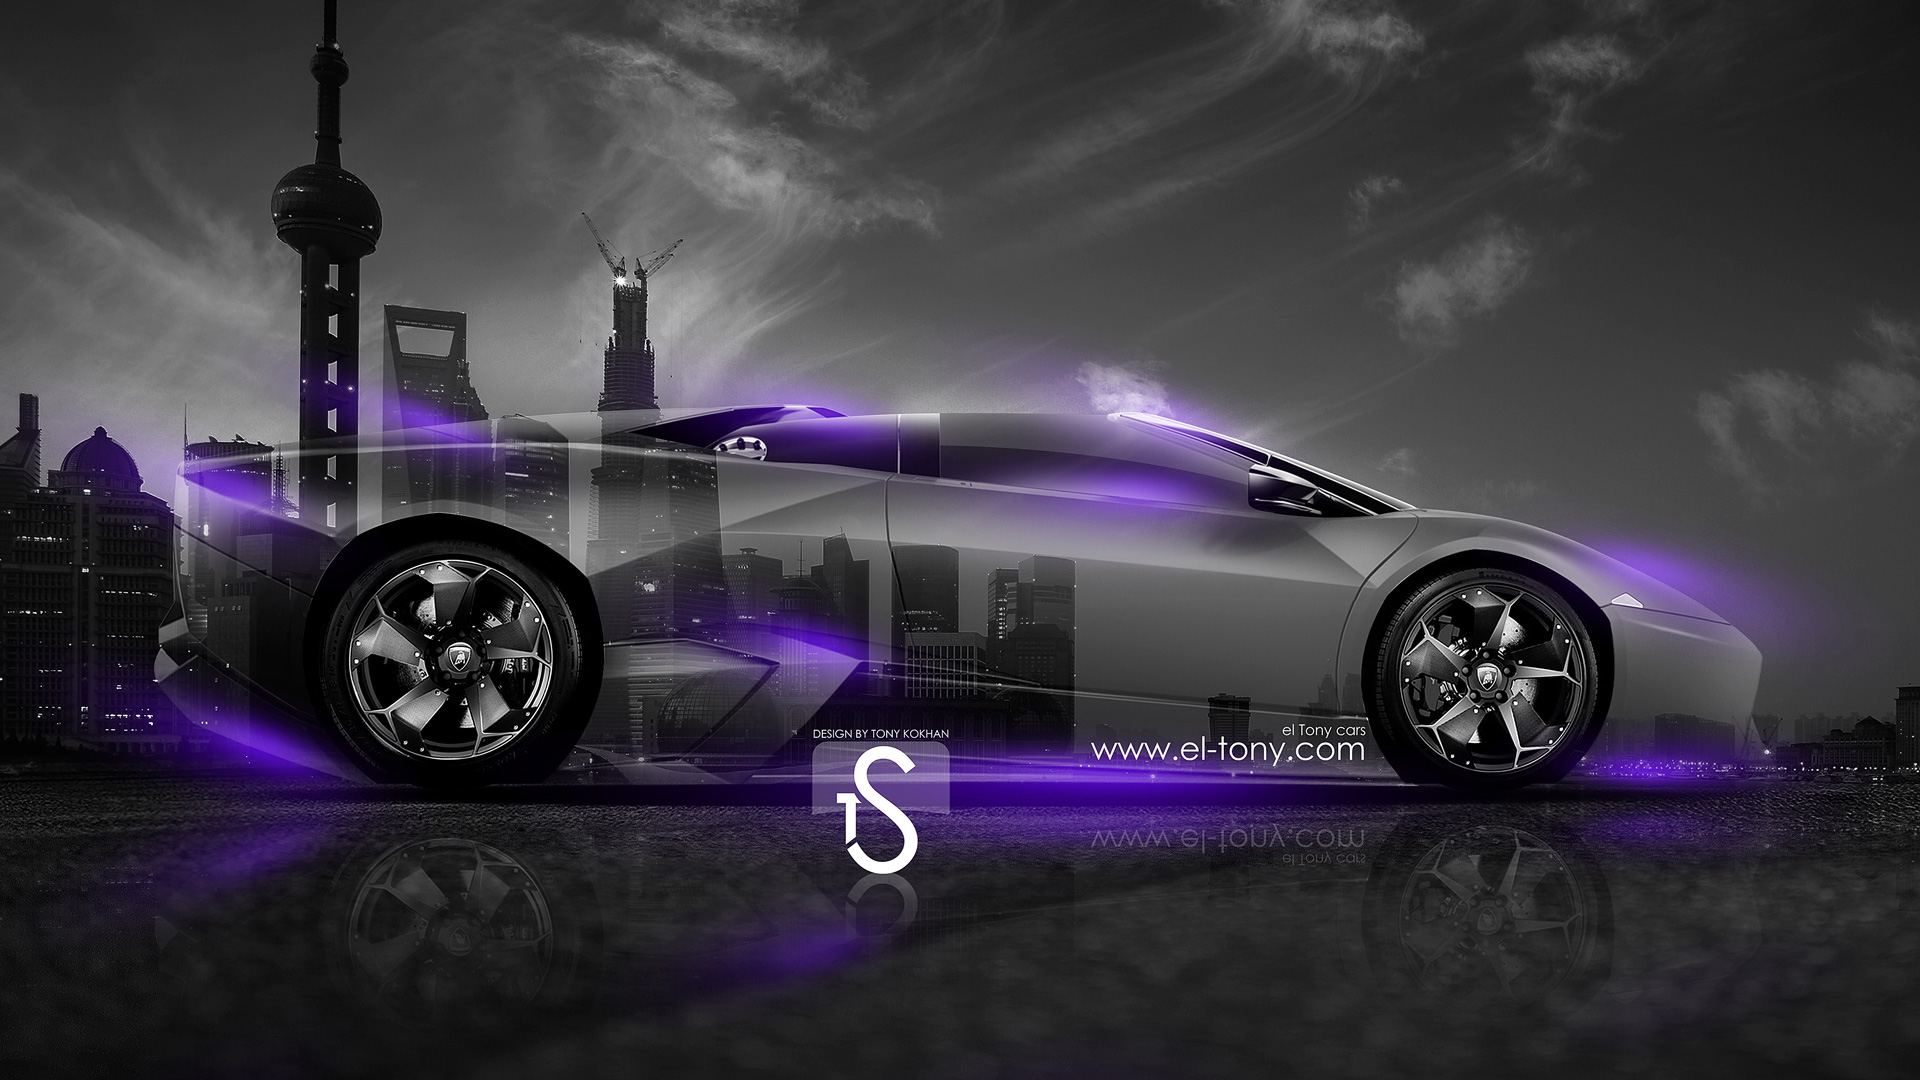 Superb Lamborghini Reventon Roadster Crystal City Car 2014 Violet